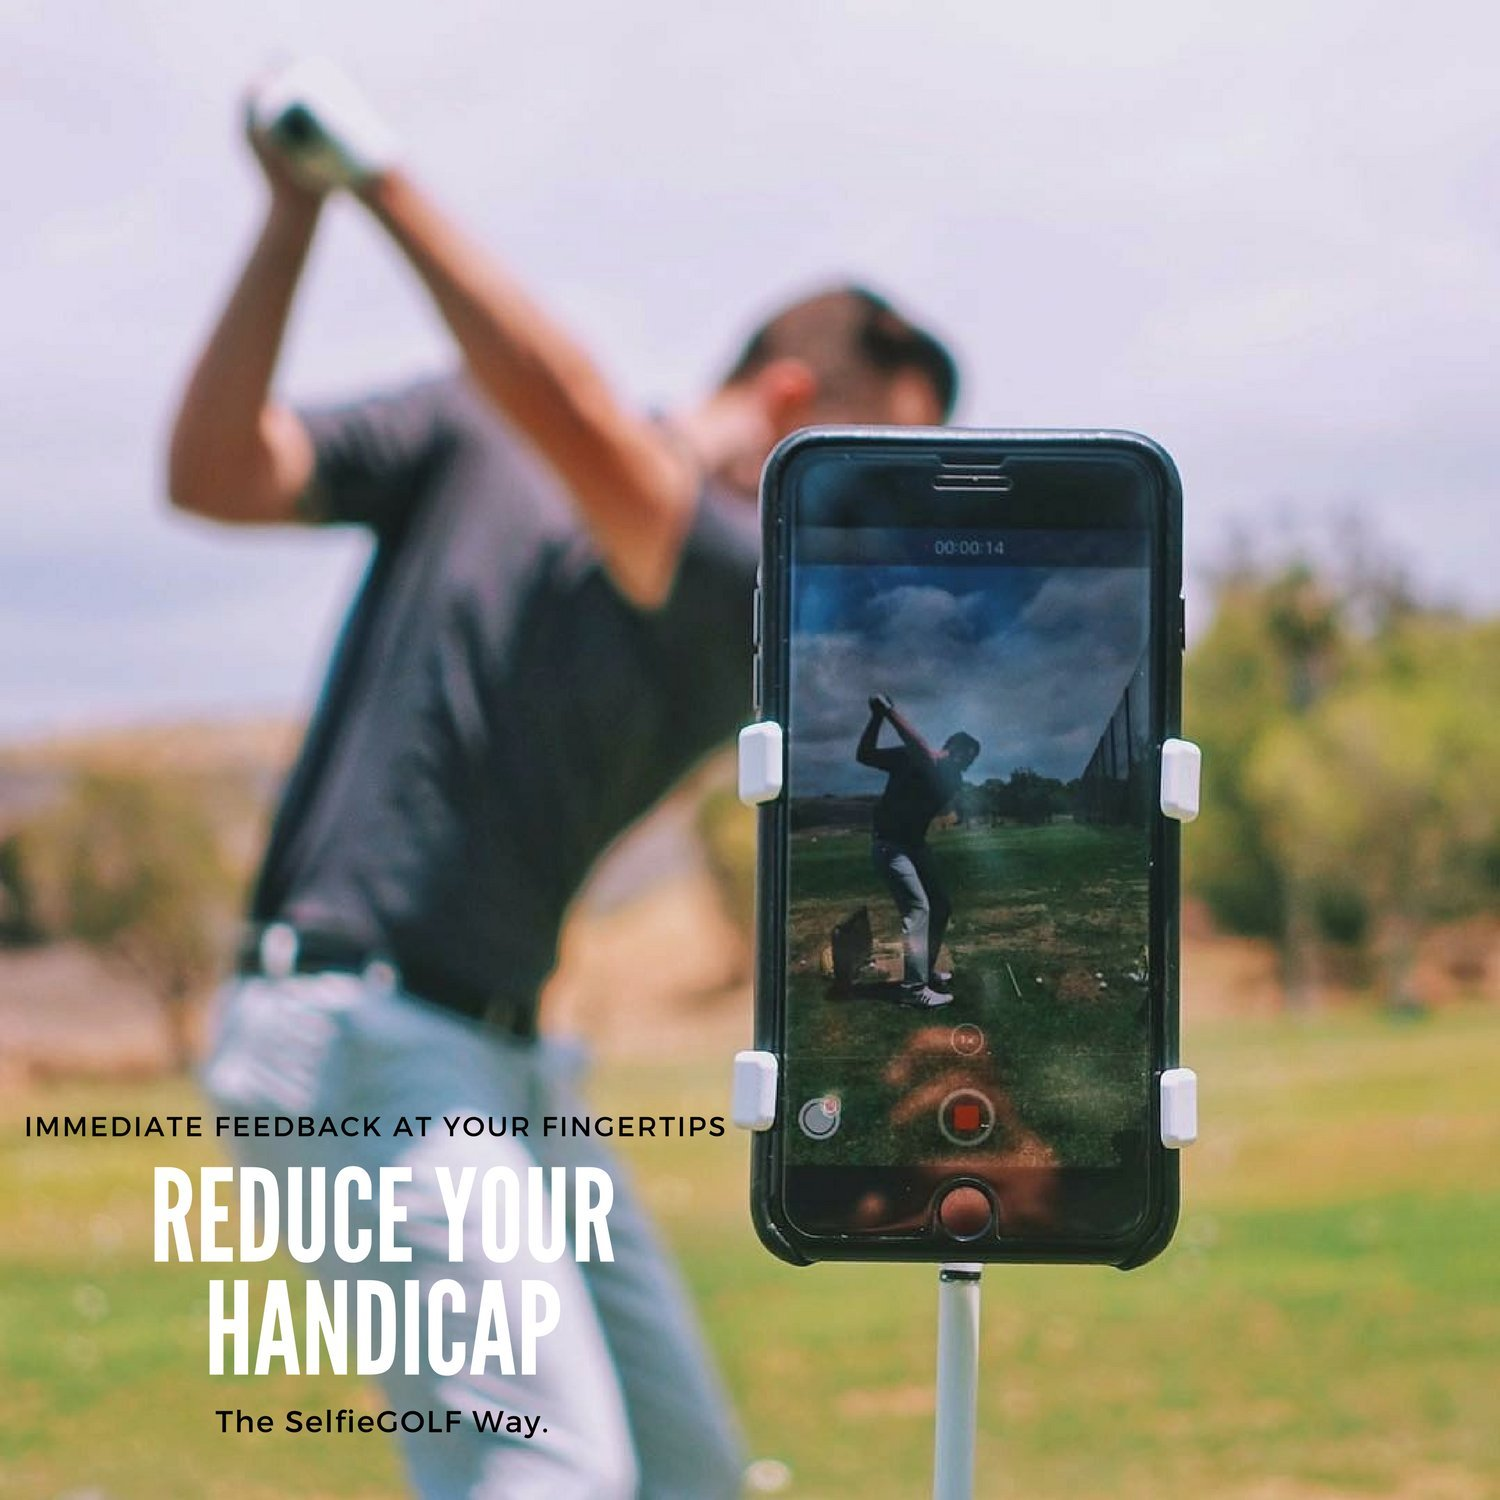 Record Golf Swing - Cell Phone Clip Holder and Training Aid by SelfieGOLF TM - Golf Accessories | The Winner of The PGA Best of 2017 | Compatible with Any Smart Phone (Red/Black) by Selfie Golf (Image #8)